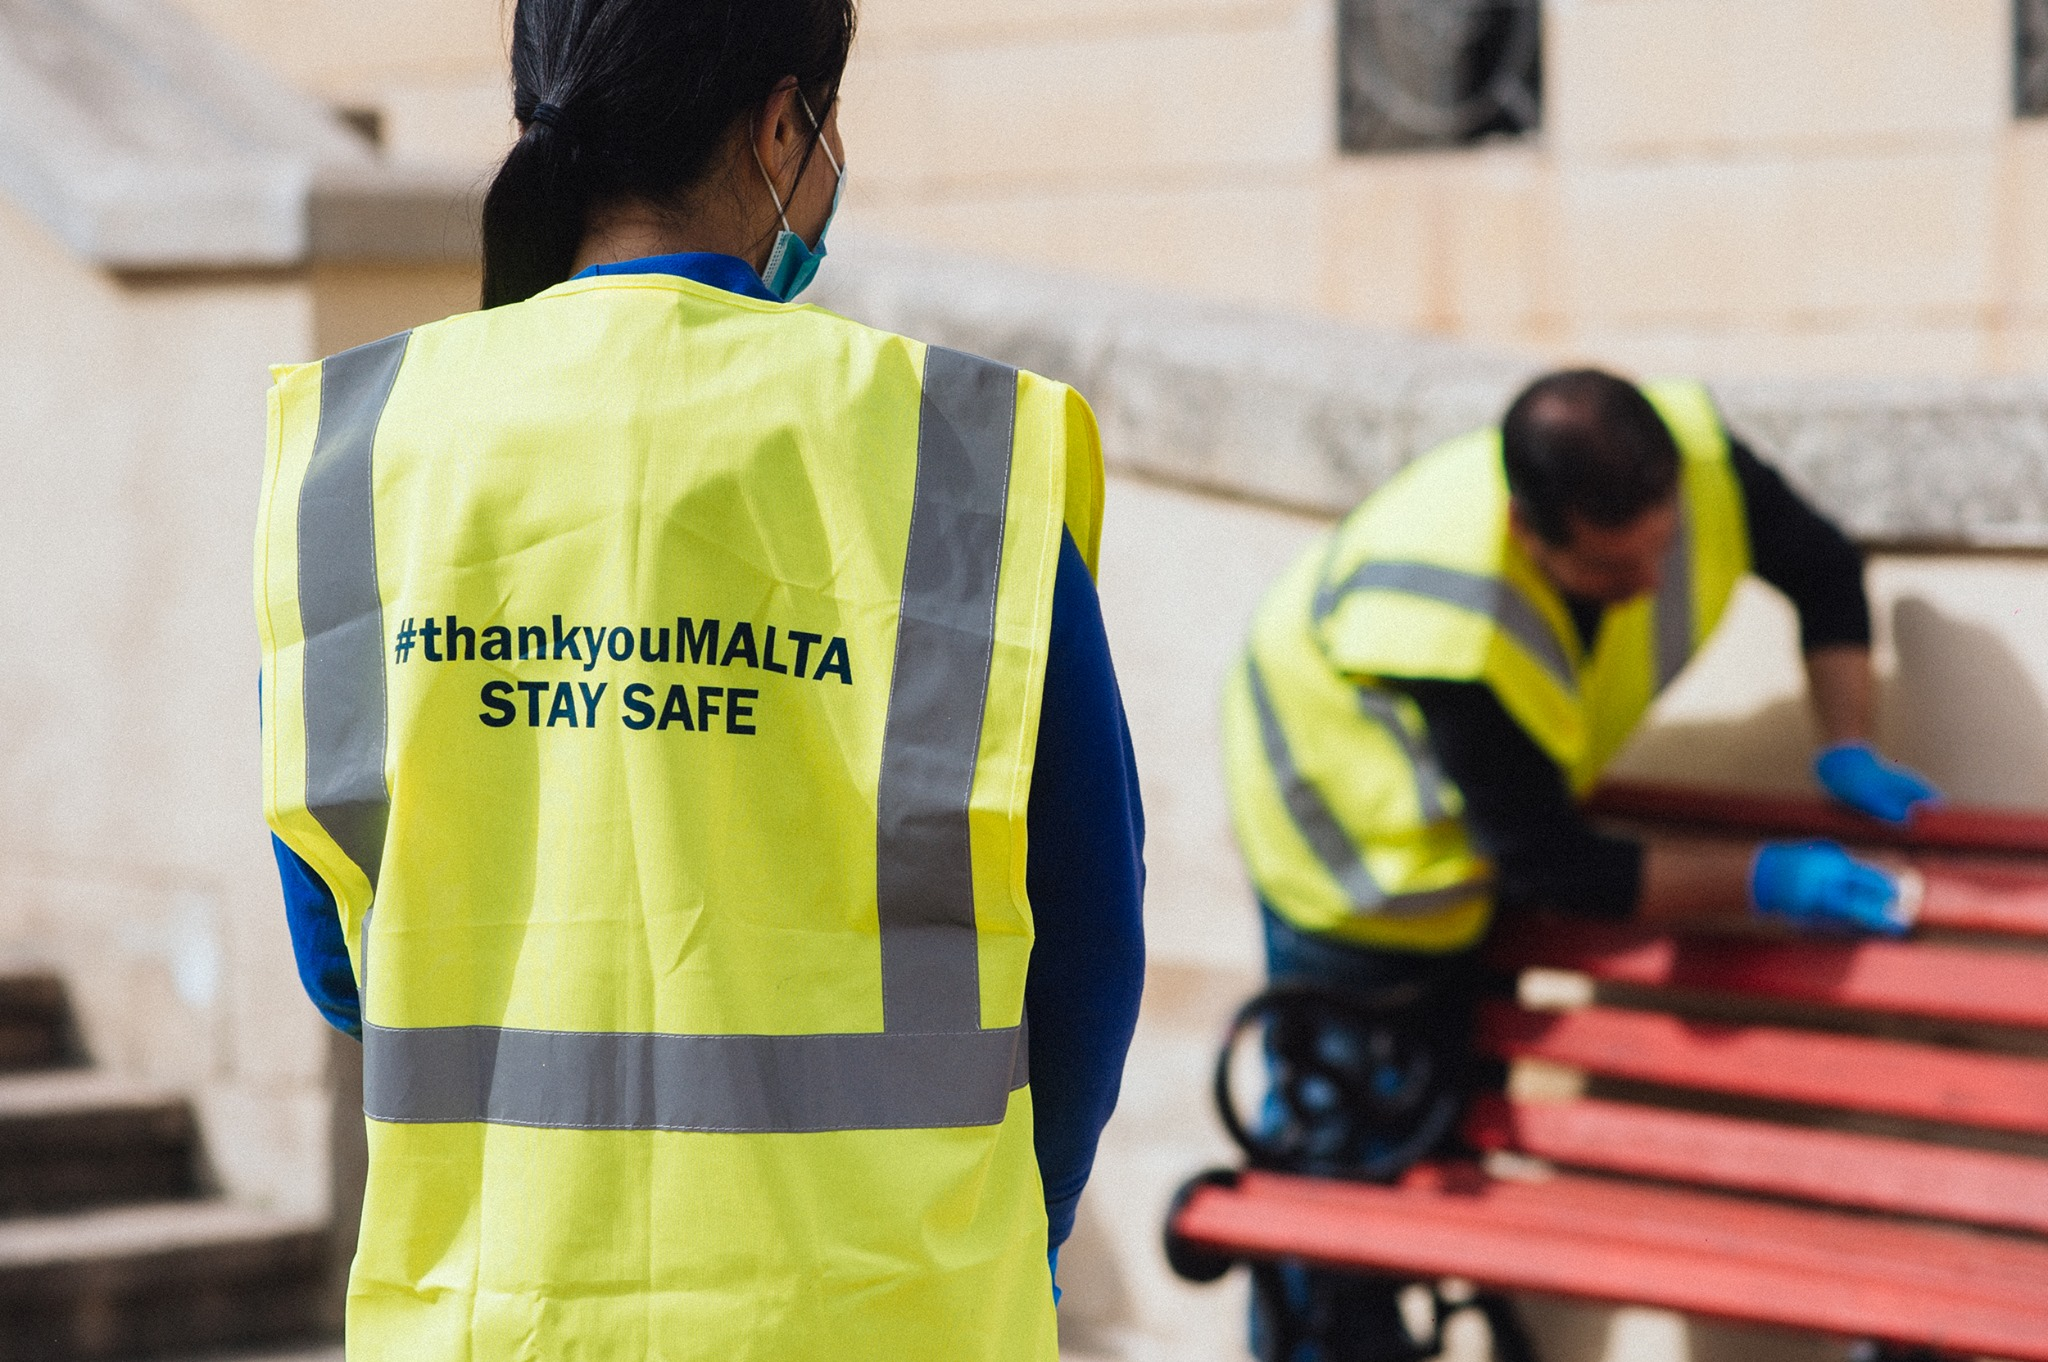 #thankyouMALTA X The First Month